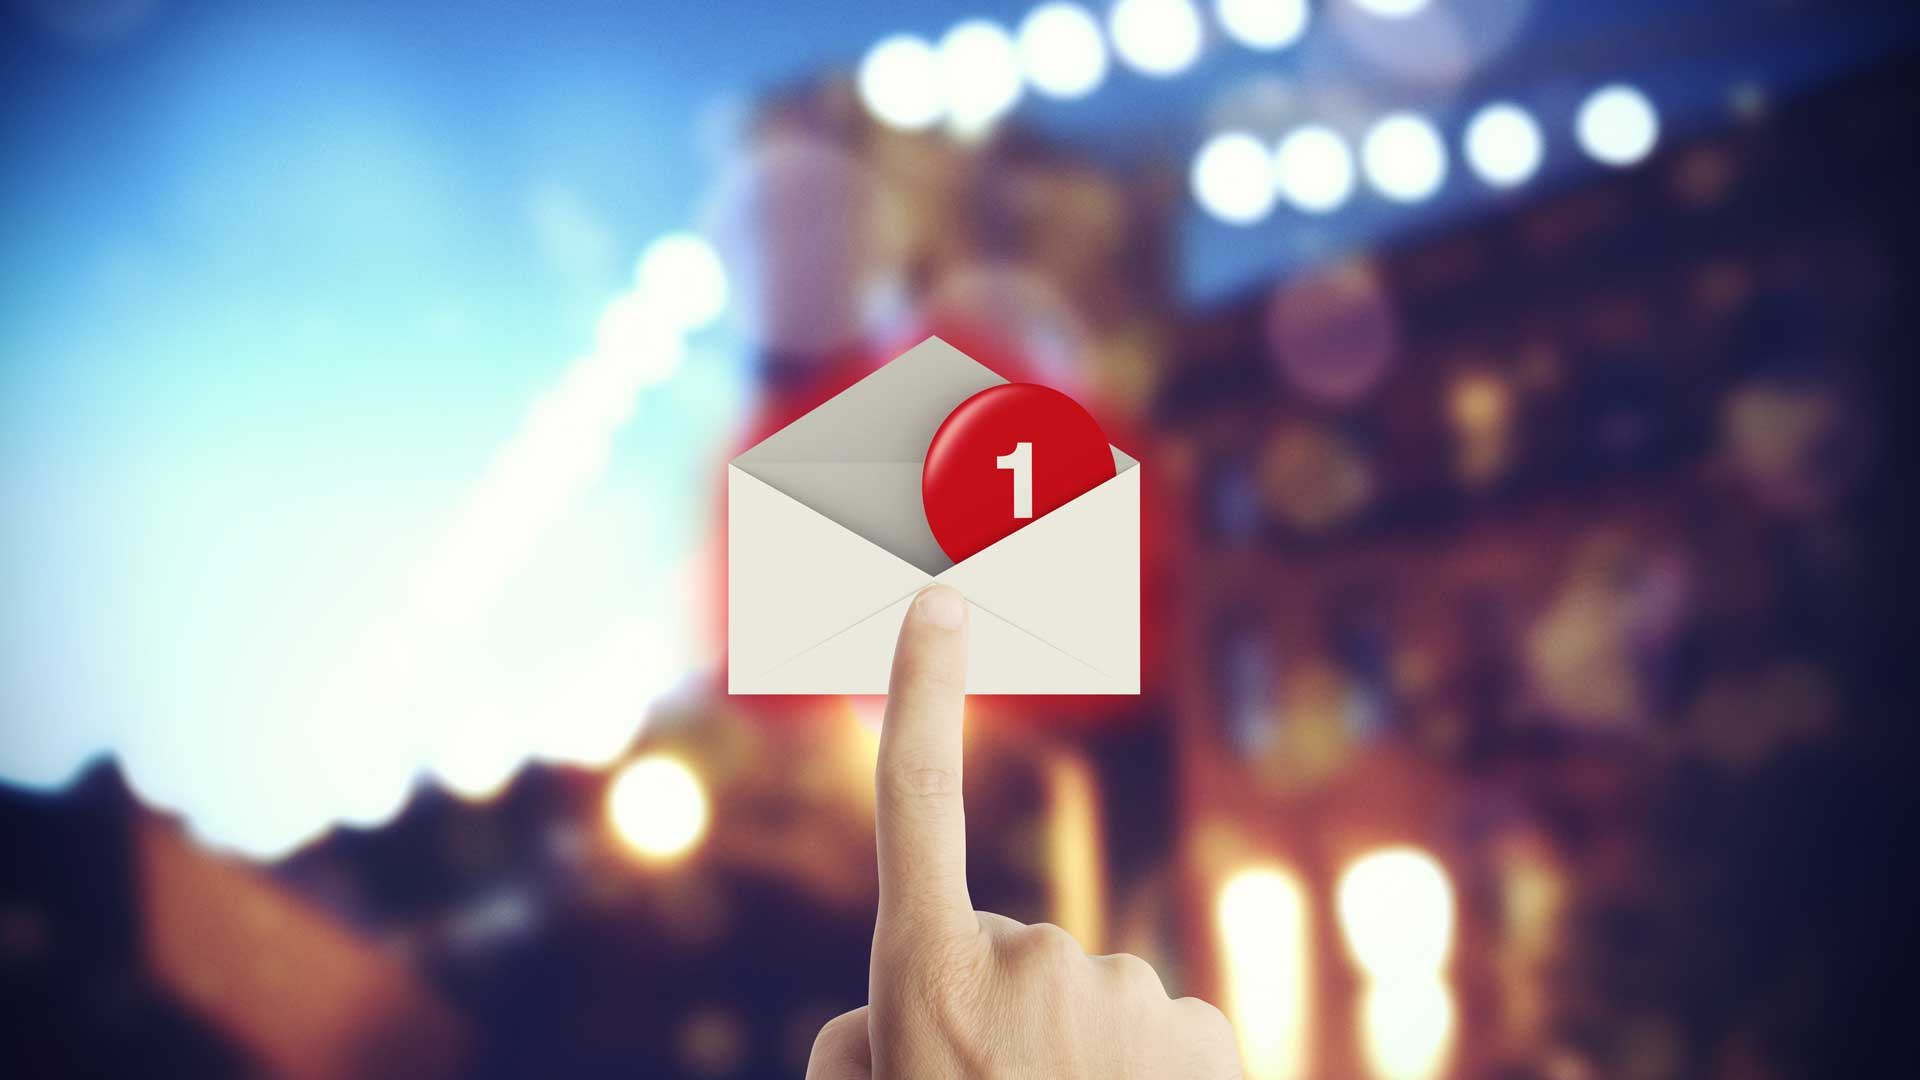 Want real email results? Stop focusing on the open rate